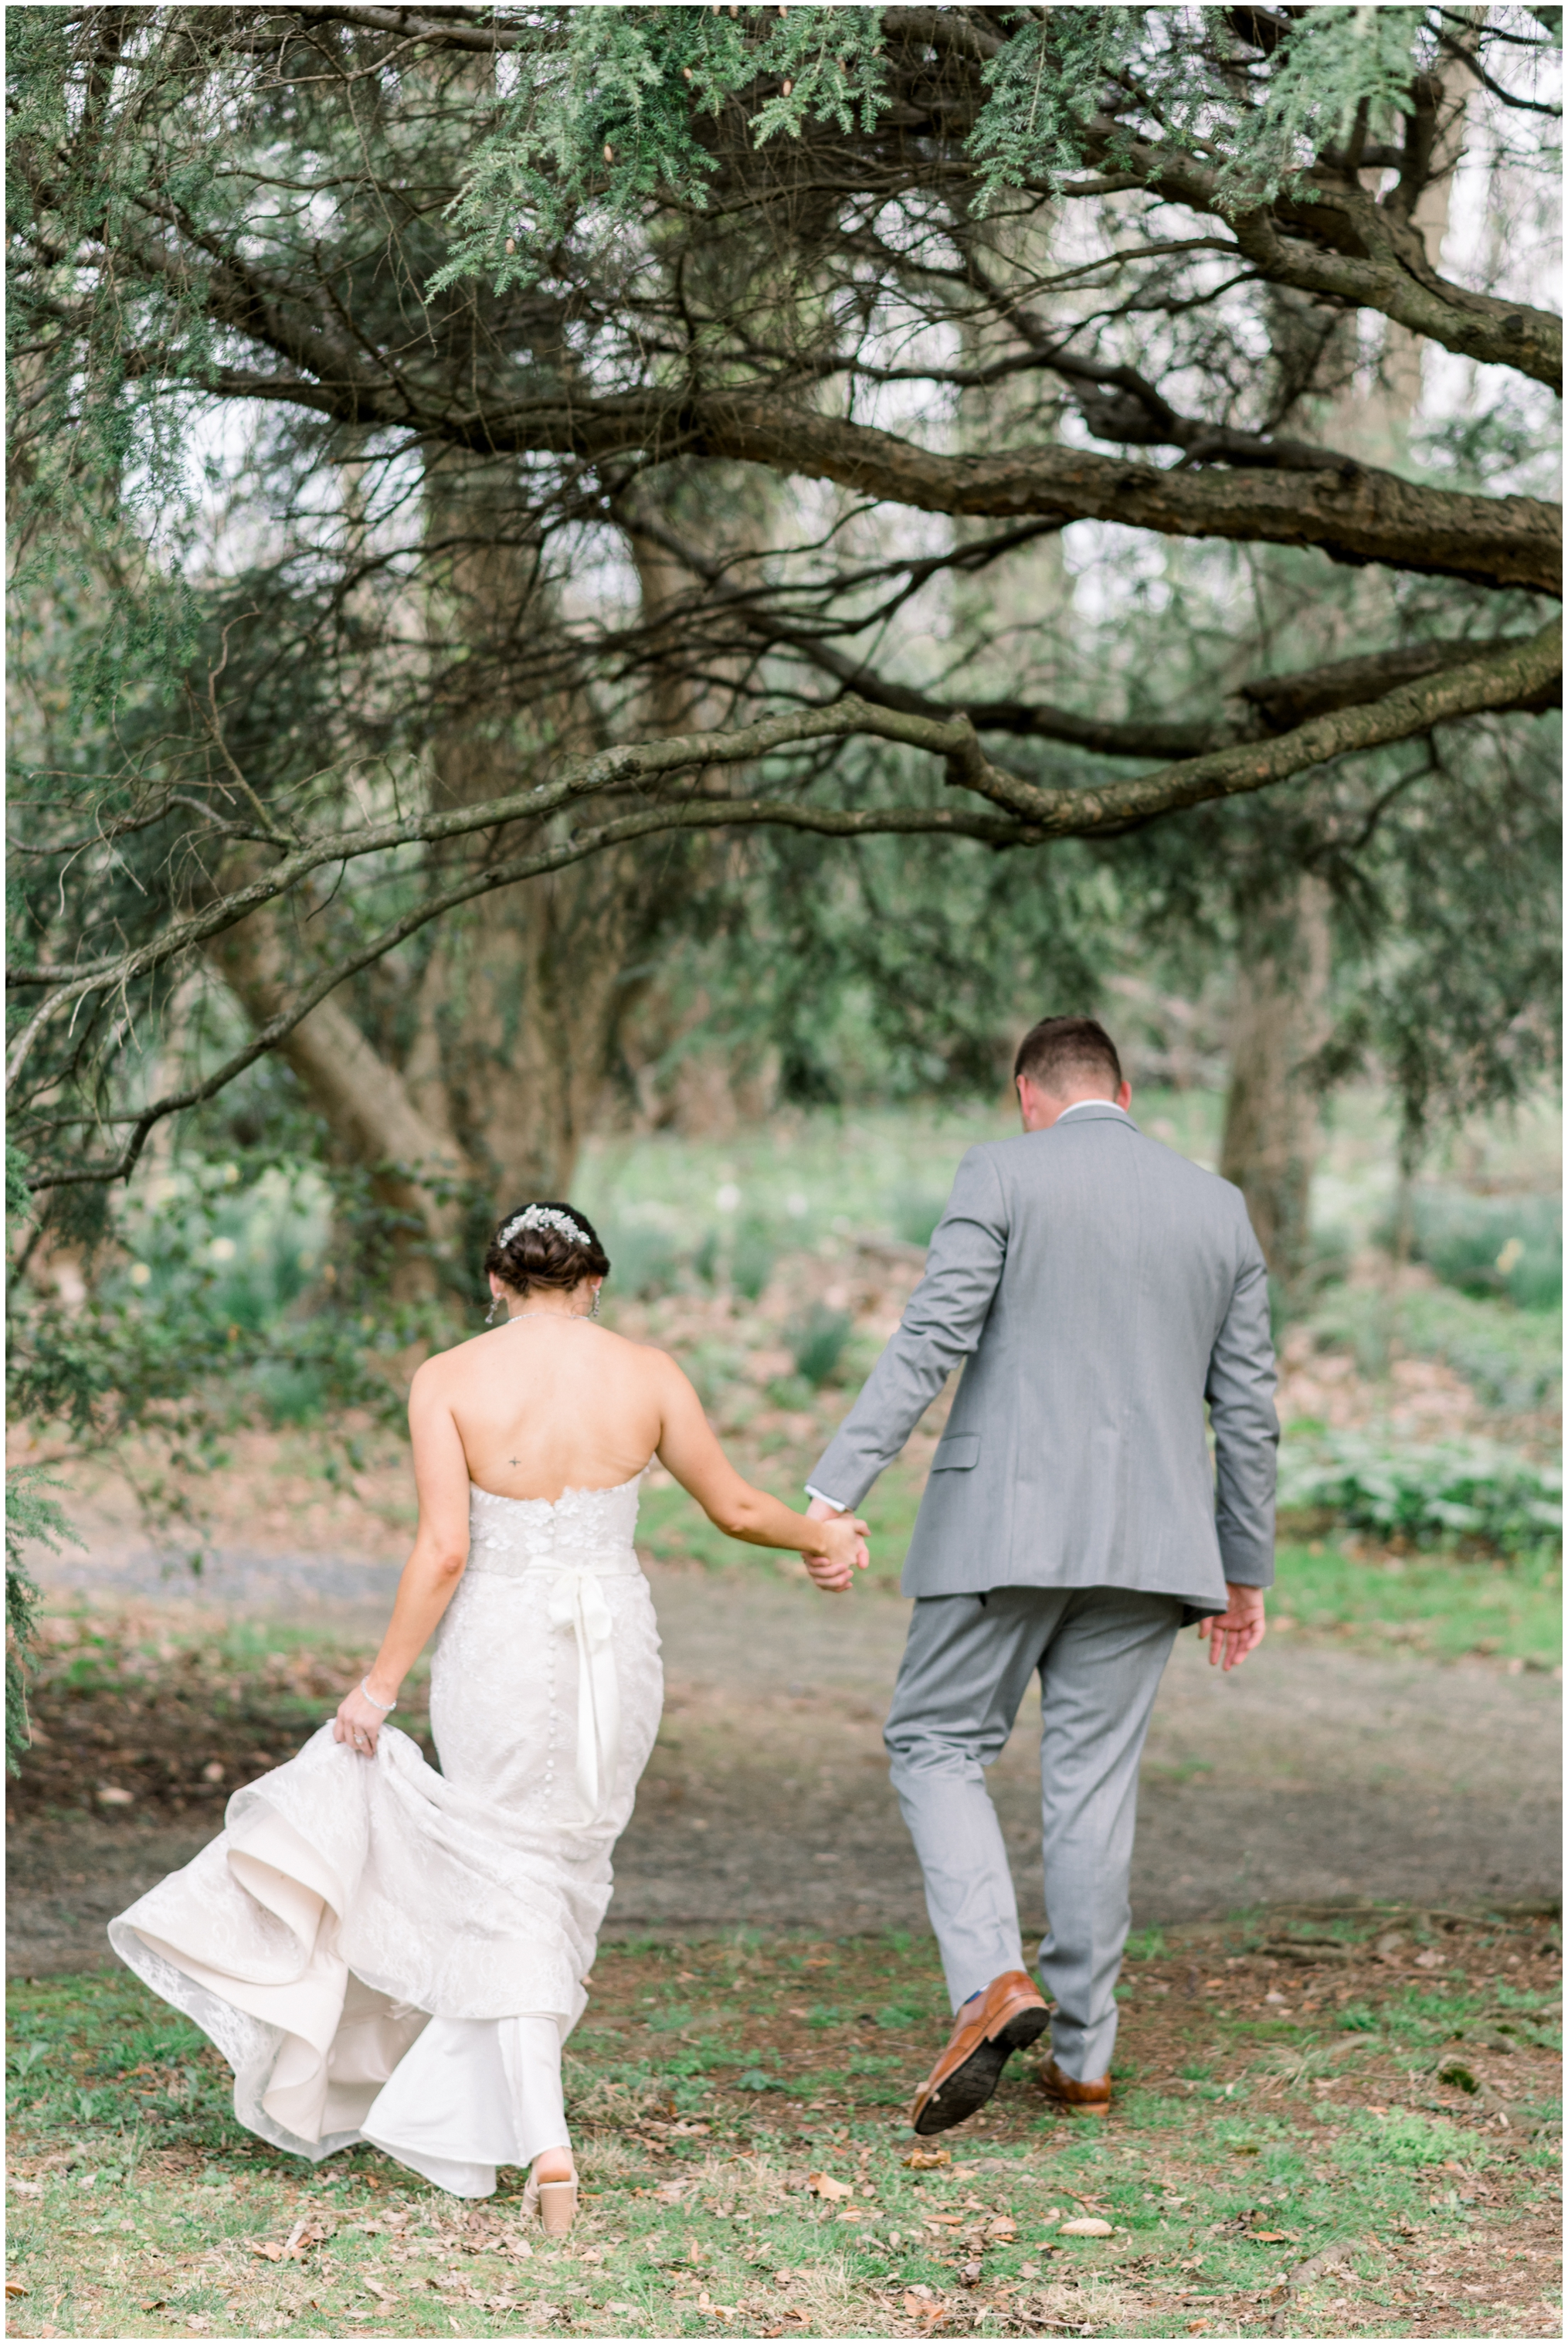 Krista Brackin Photography | April Wedding at The Carriage House at Rockwood Park_0081.jpg